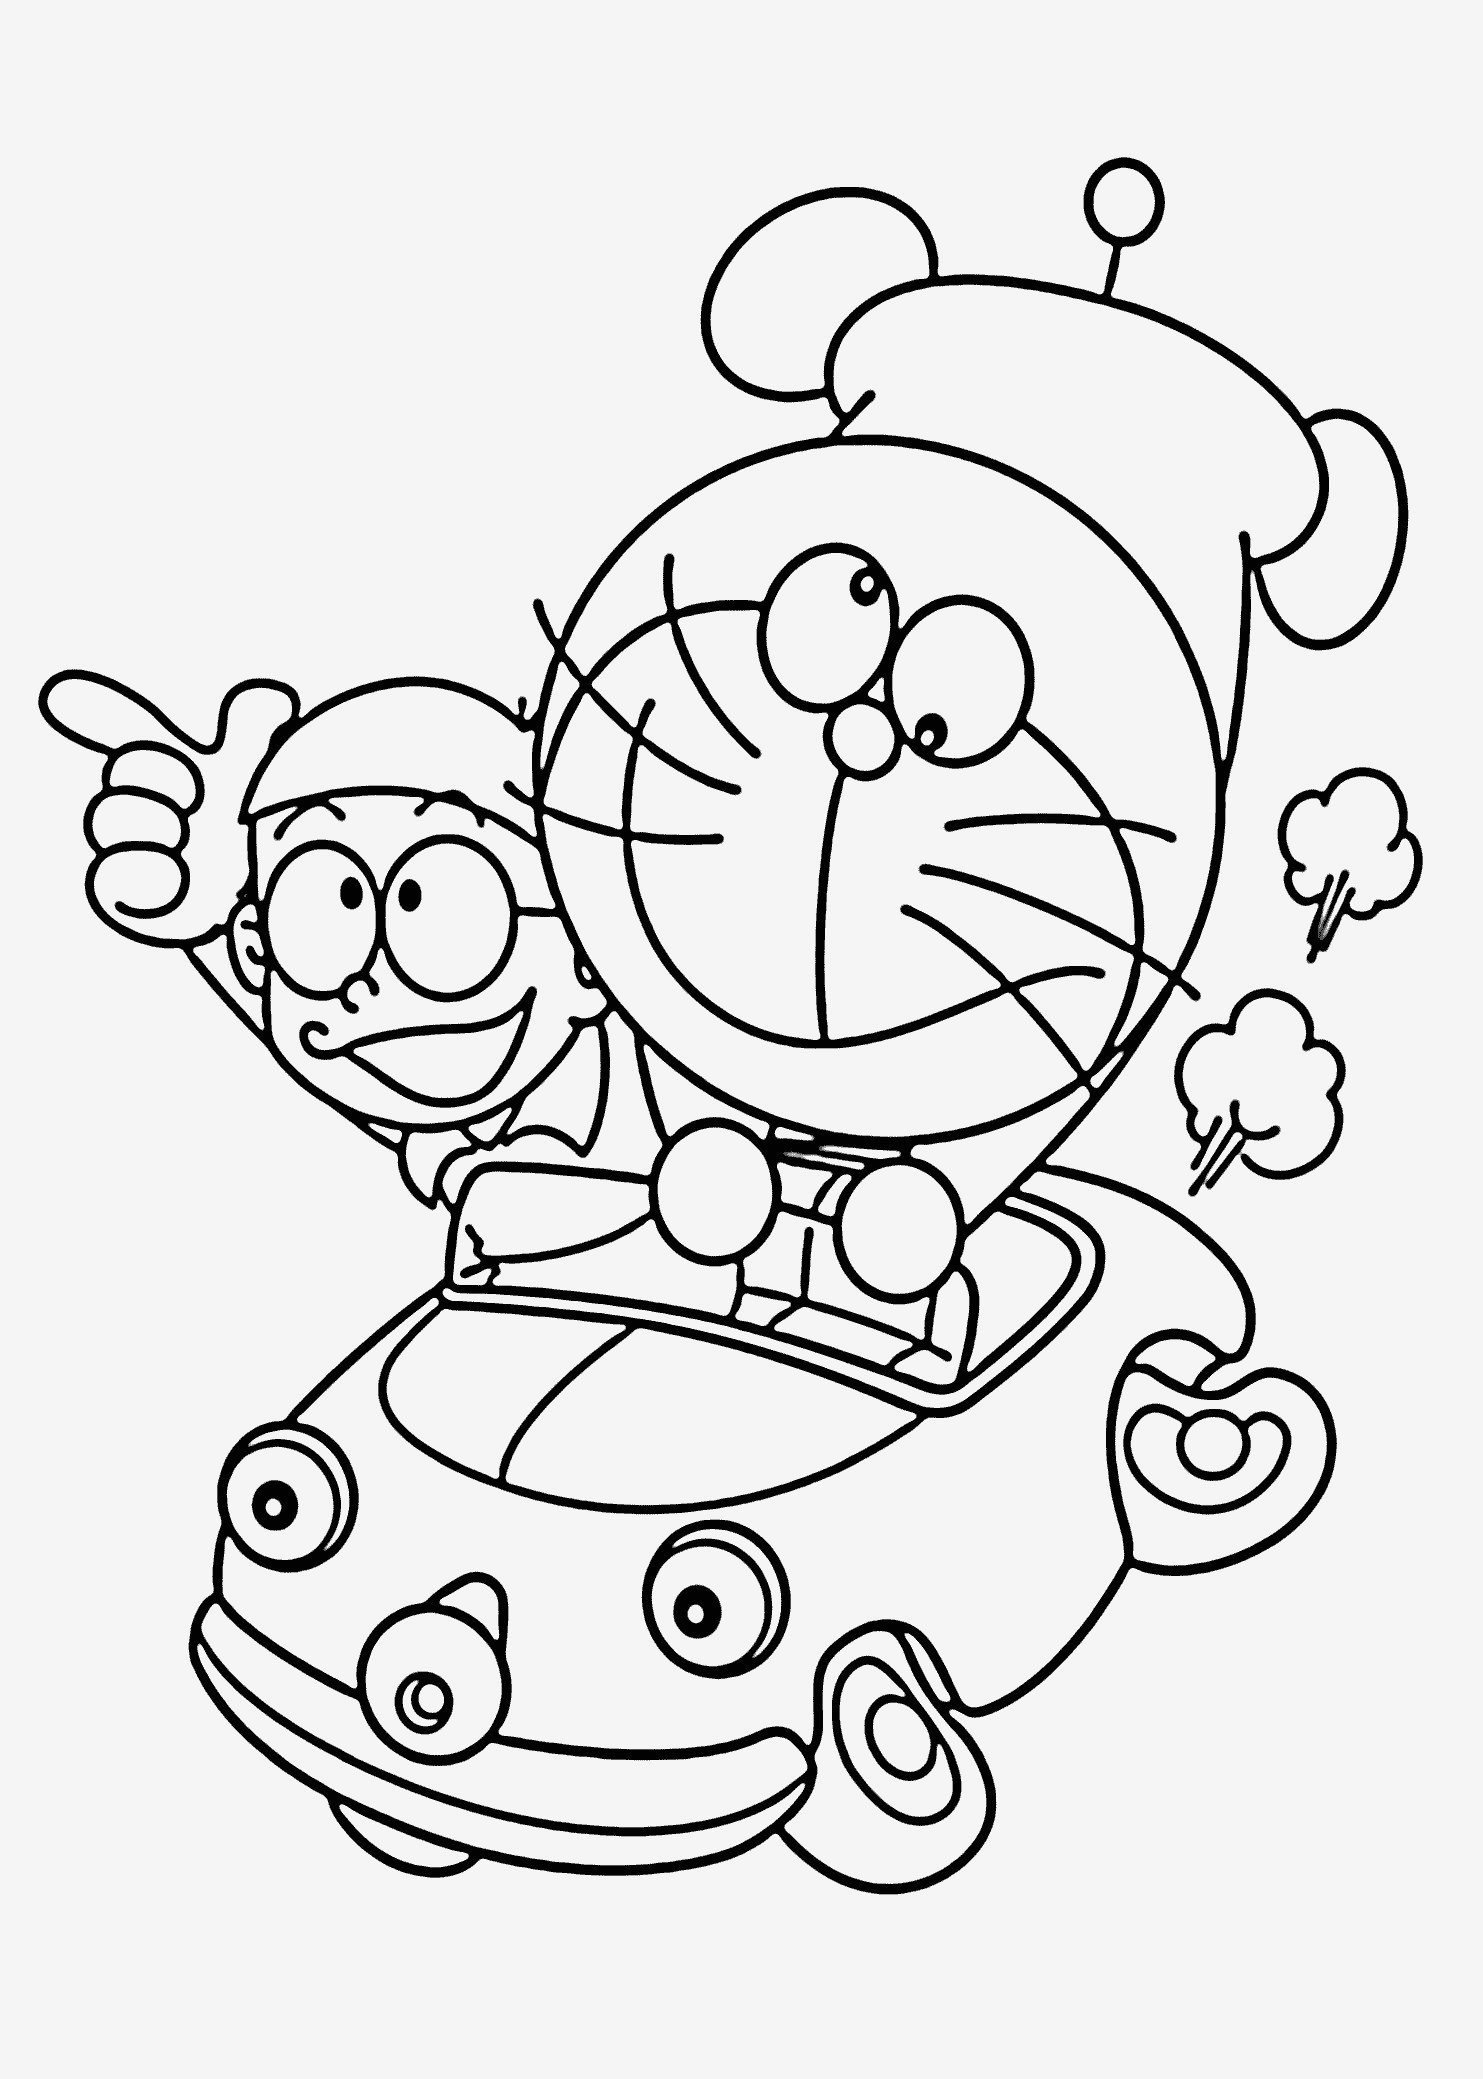 coloring pages to print off Download-plex Coloring Pages Amazing Advantages Coloring Pages Ariel Awesome Coloring Page Free Coloring Page 0d 16-f